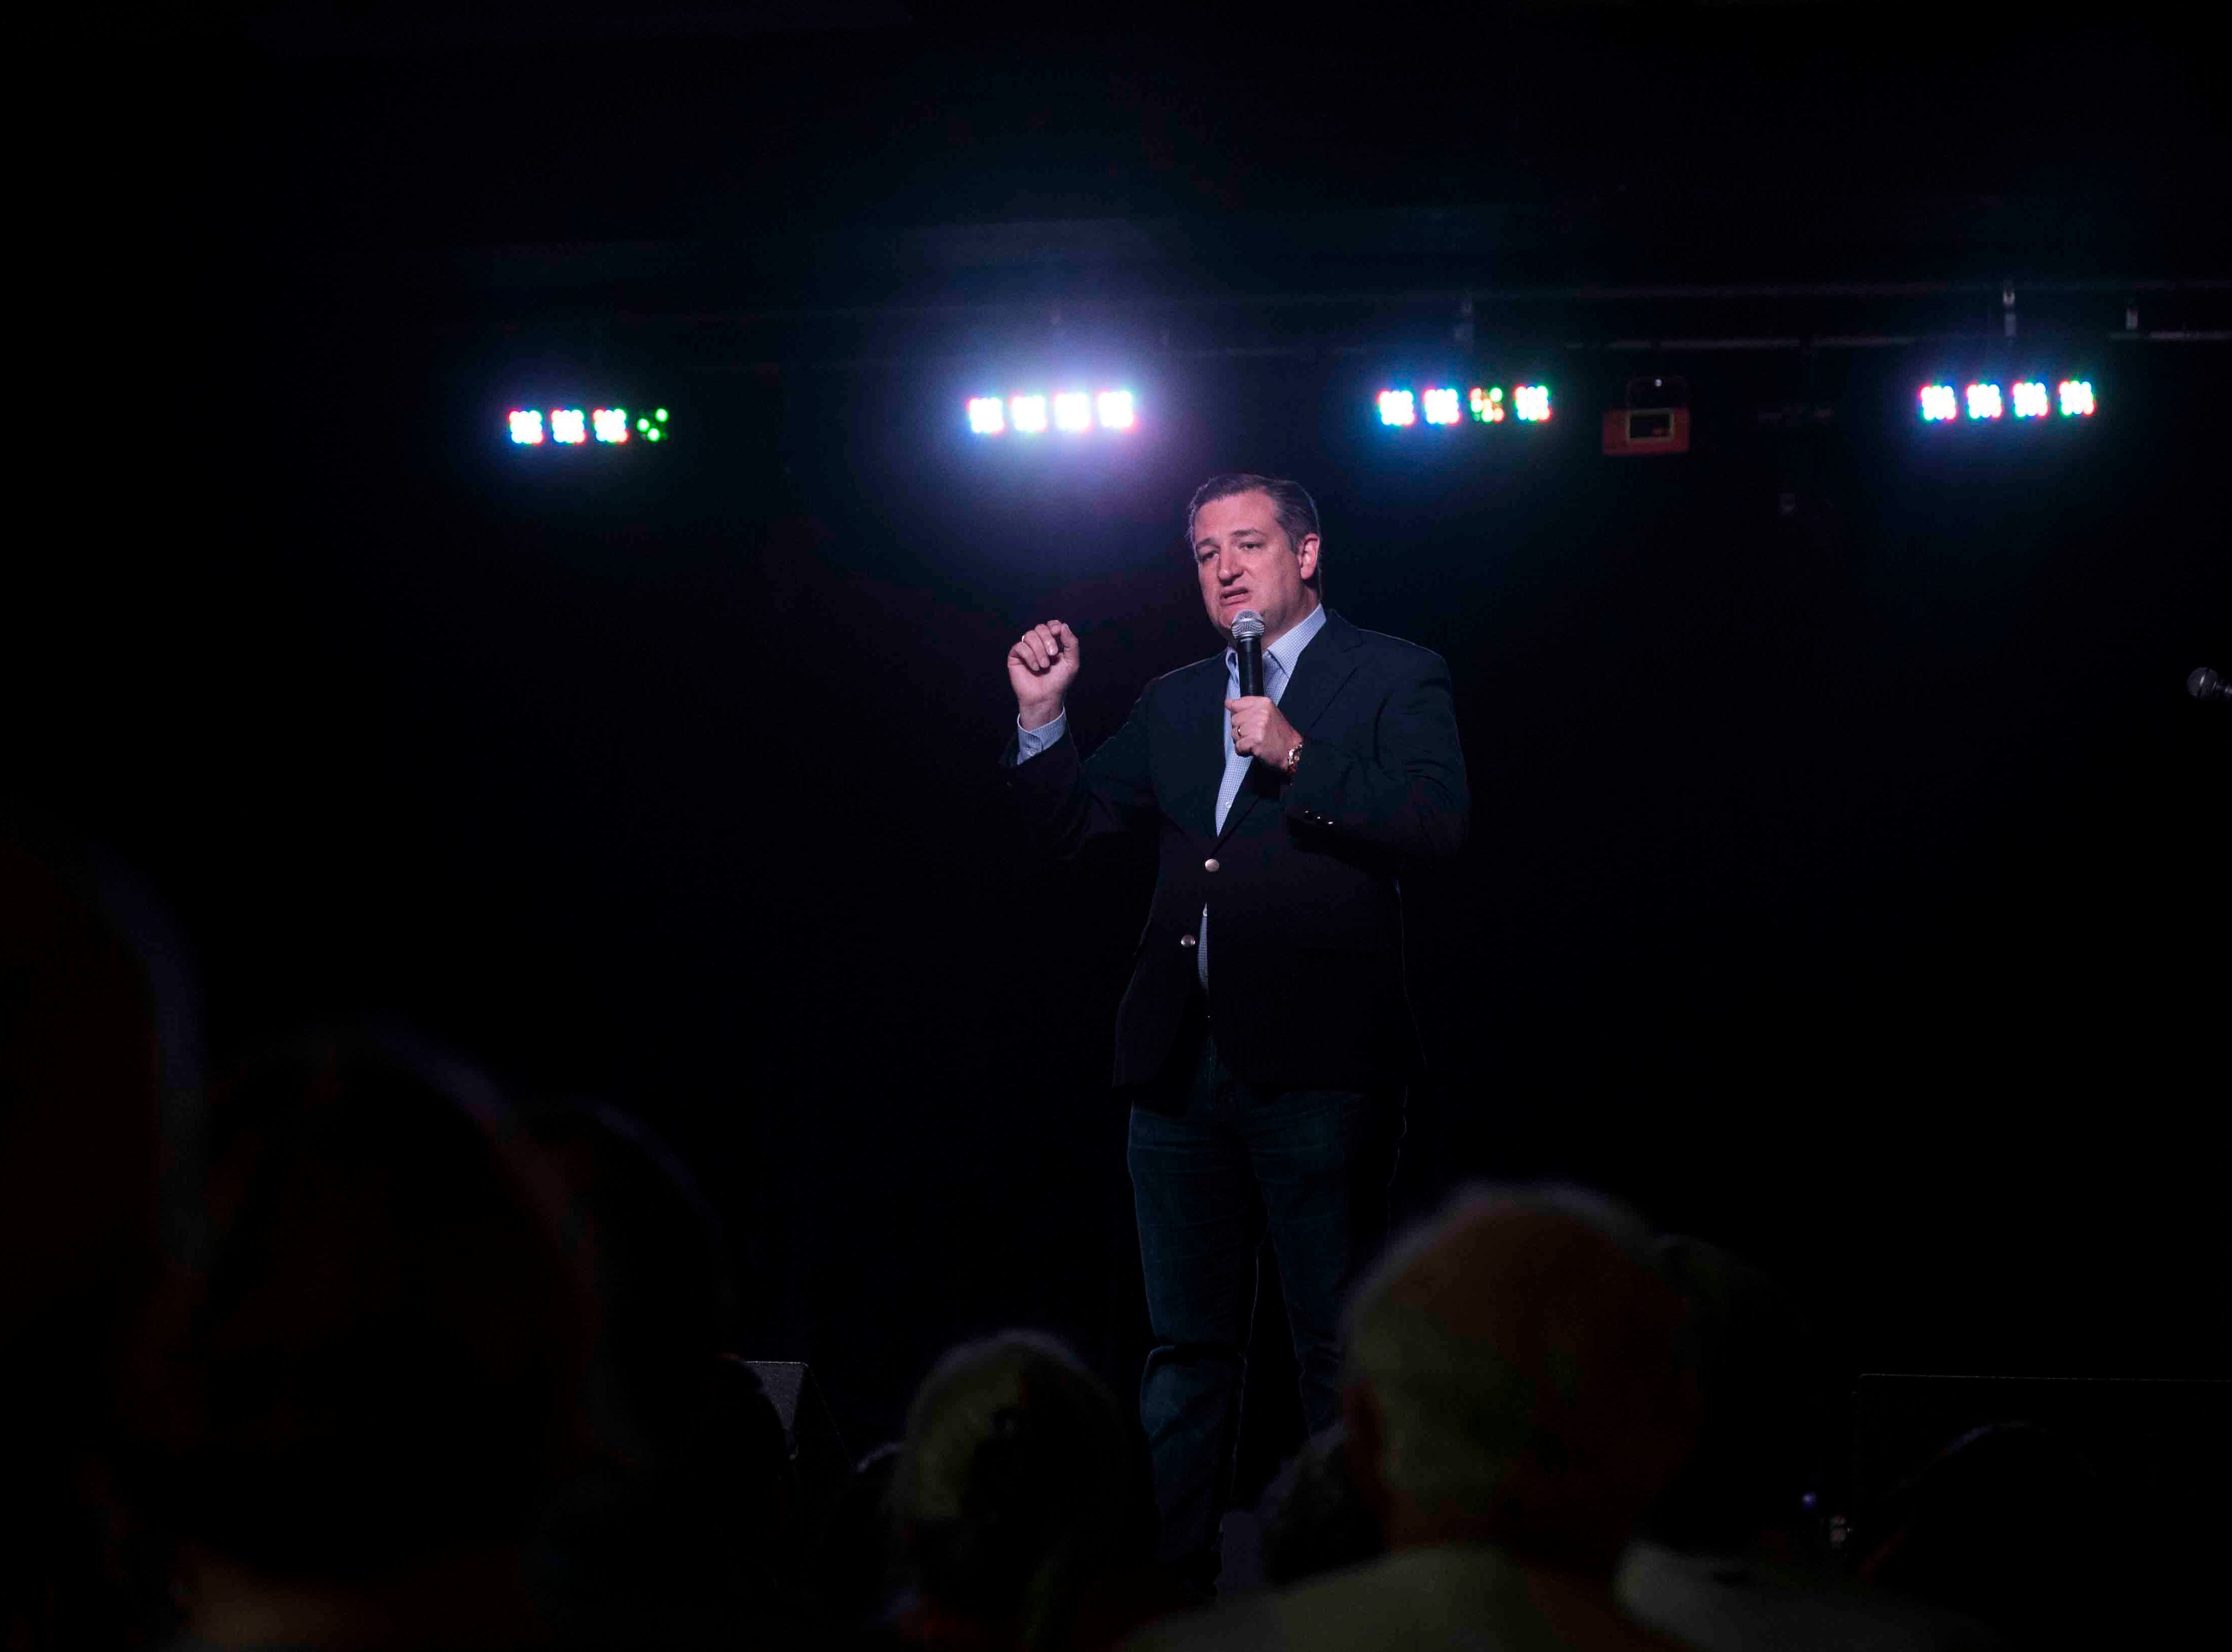 U.S. Senator Ted Cruz speaks to supporters during a campaign event on Saturday, August 16, 2018, at House of Rock.